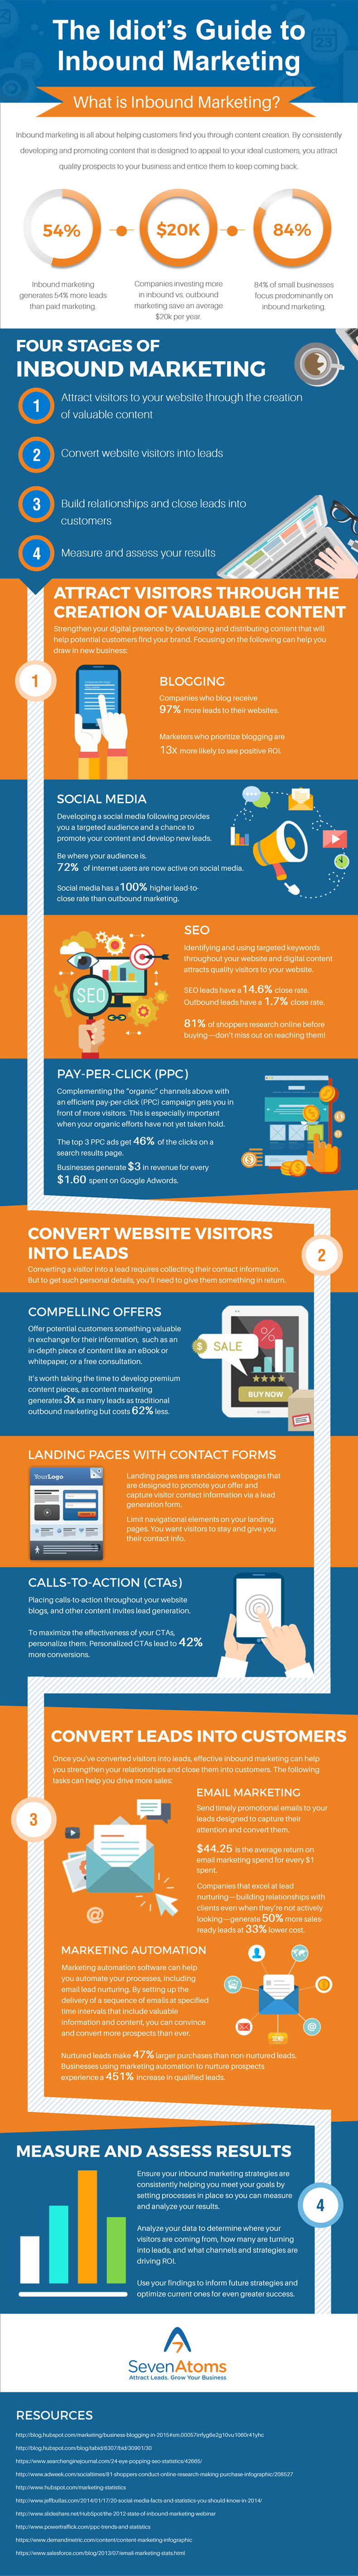 digital-marketing-infographics-2-idiots-guide.png